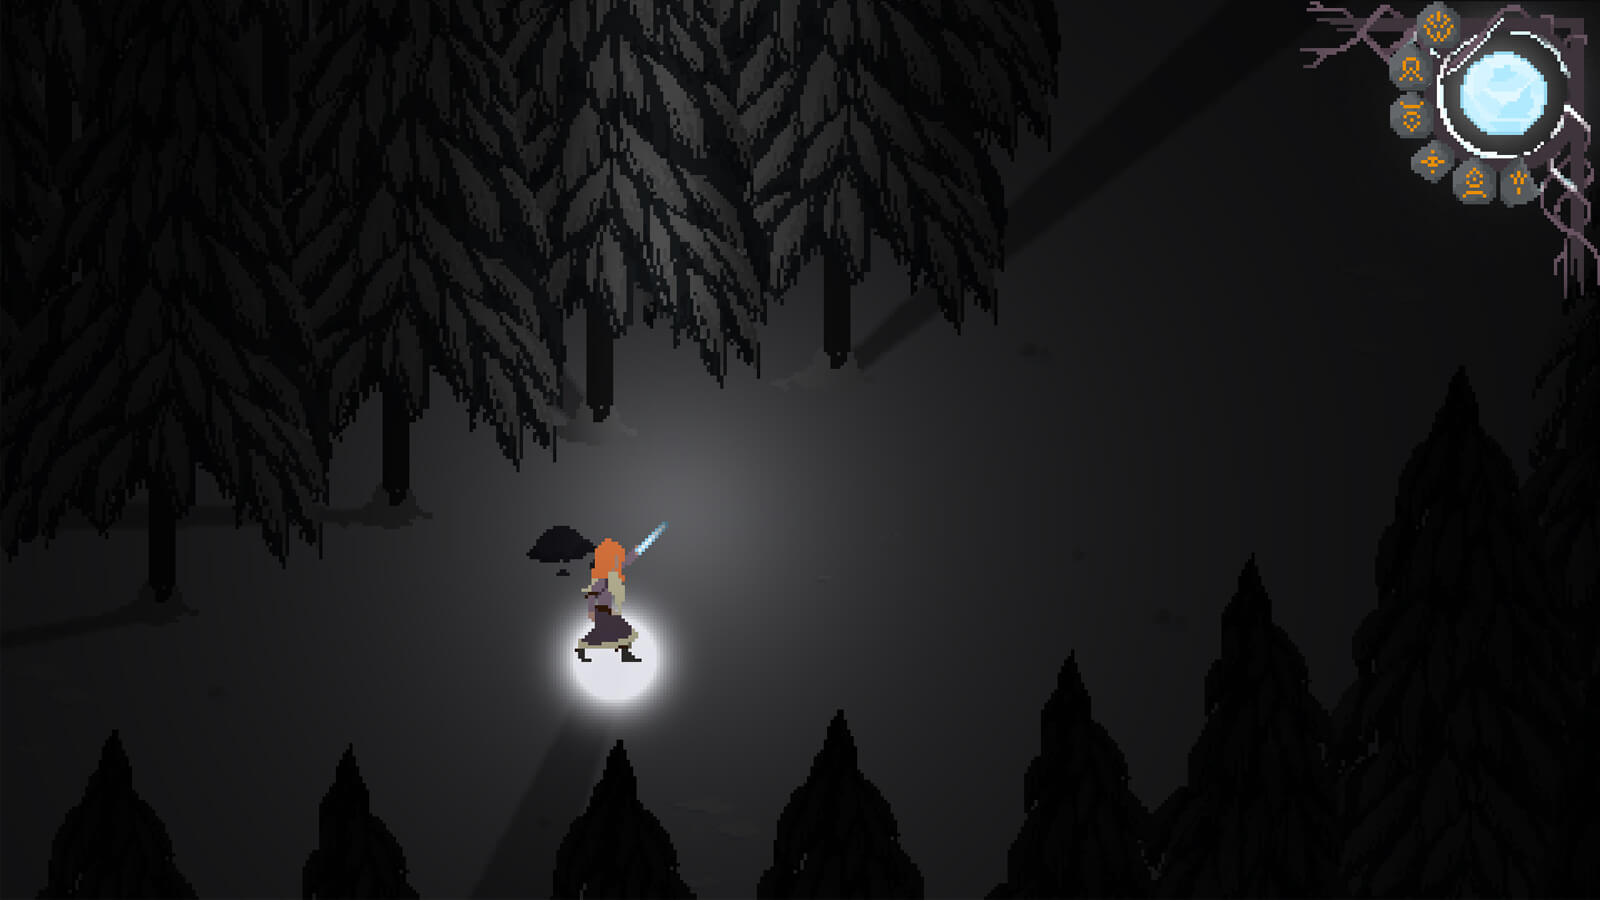 The game's heroine wielding a glowing blade in a dark, snowy forest.